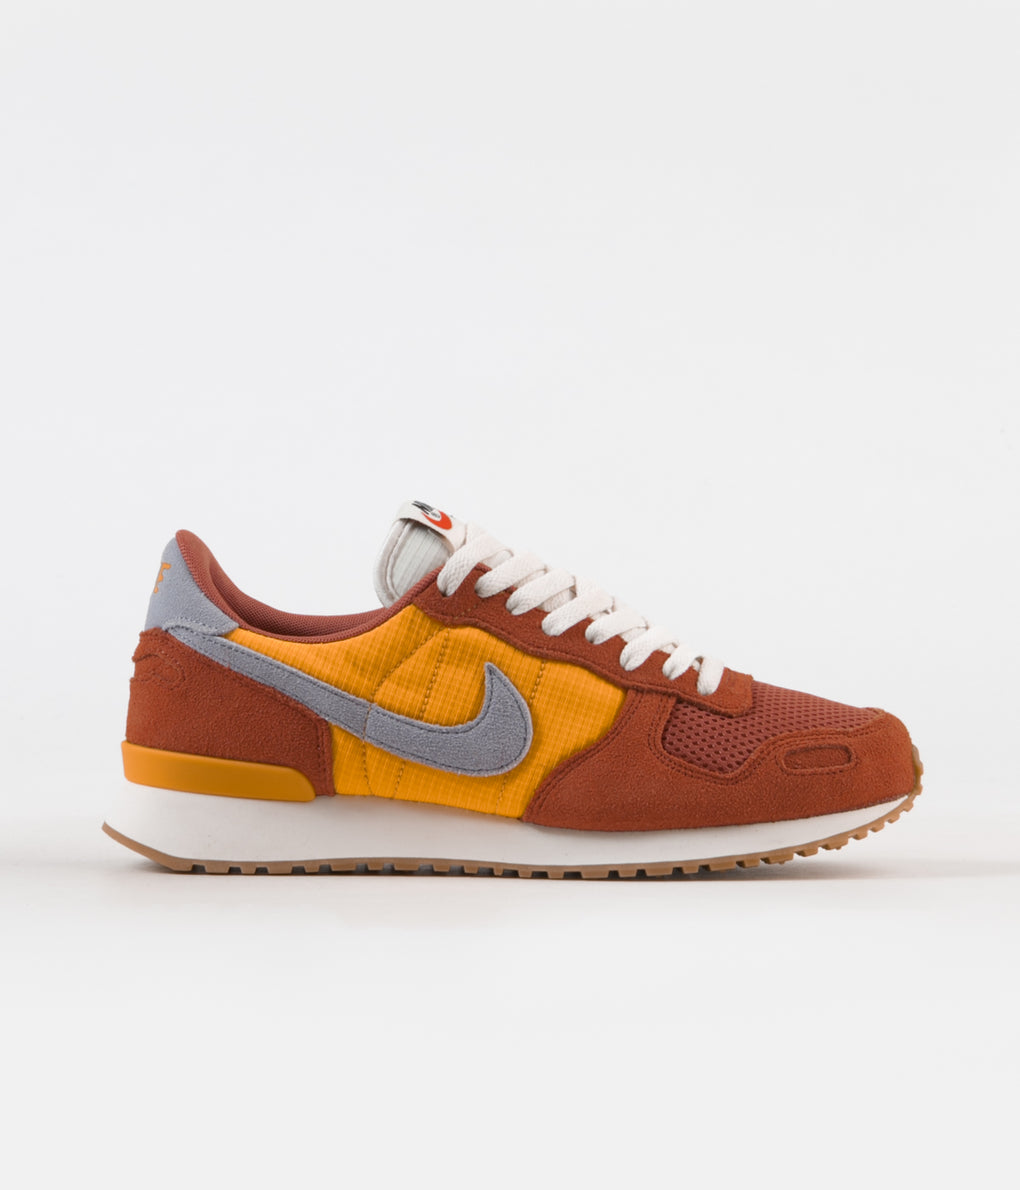 Nike Air Vortex Shoes - Dusty Peach / Obsidian Mint - Laser Orange